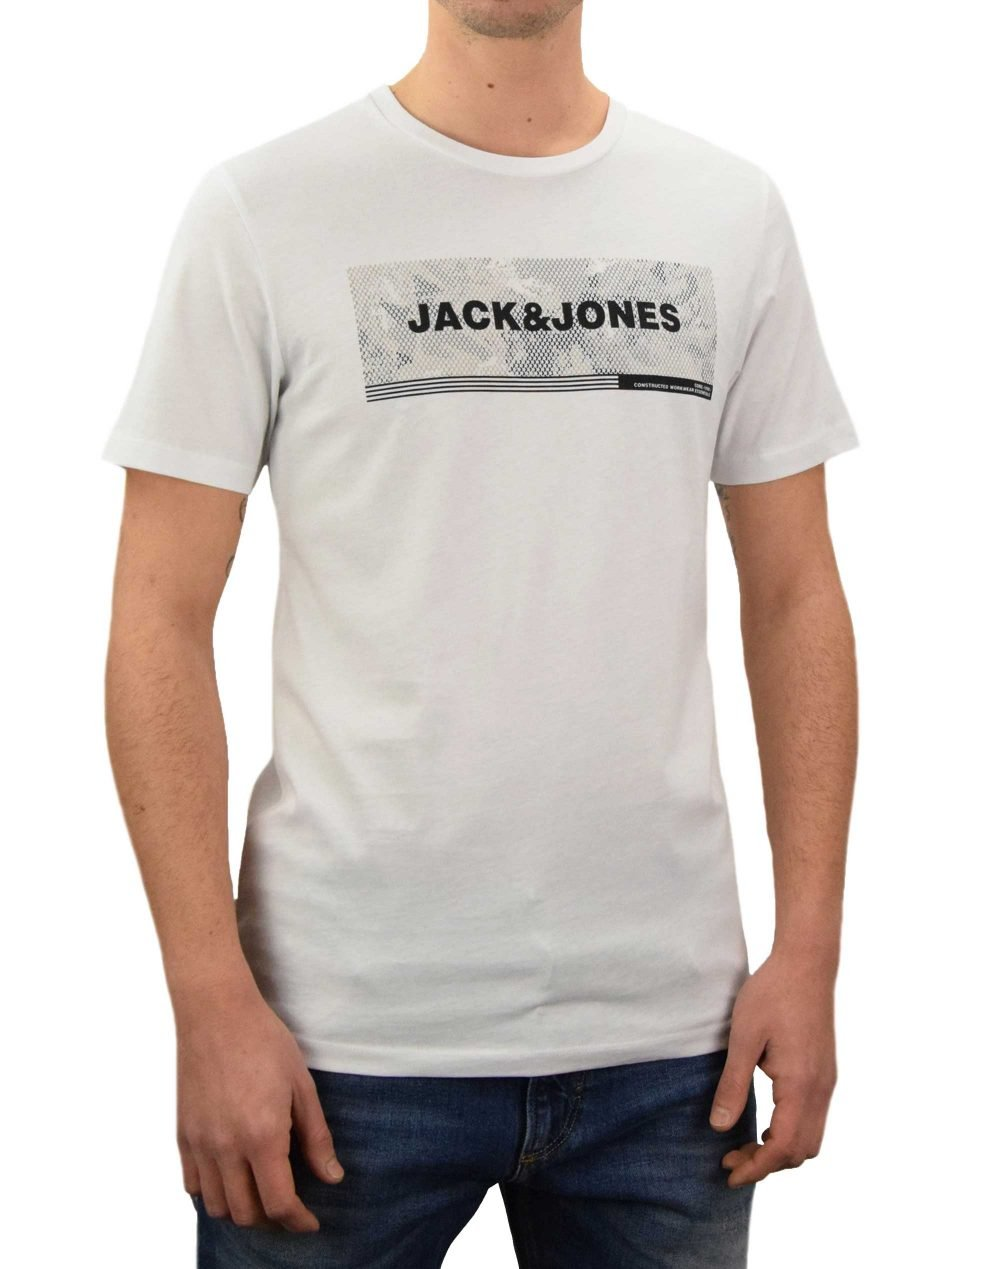 Jack & Jones Campa Slim Tee (12188029) White